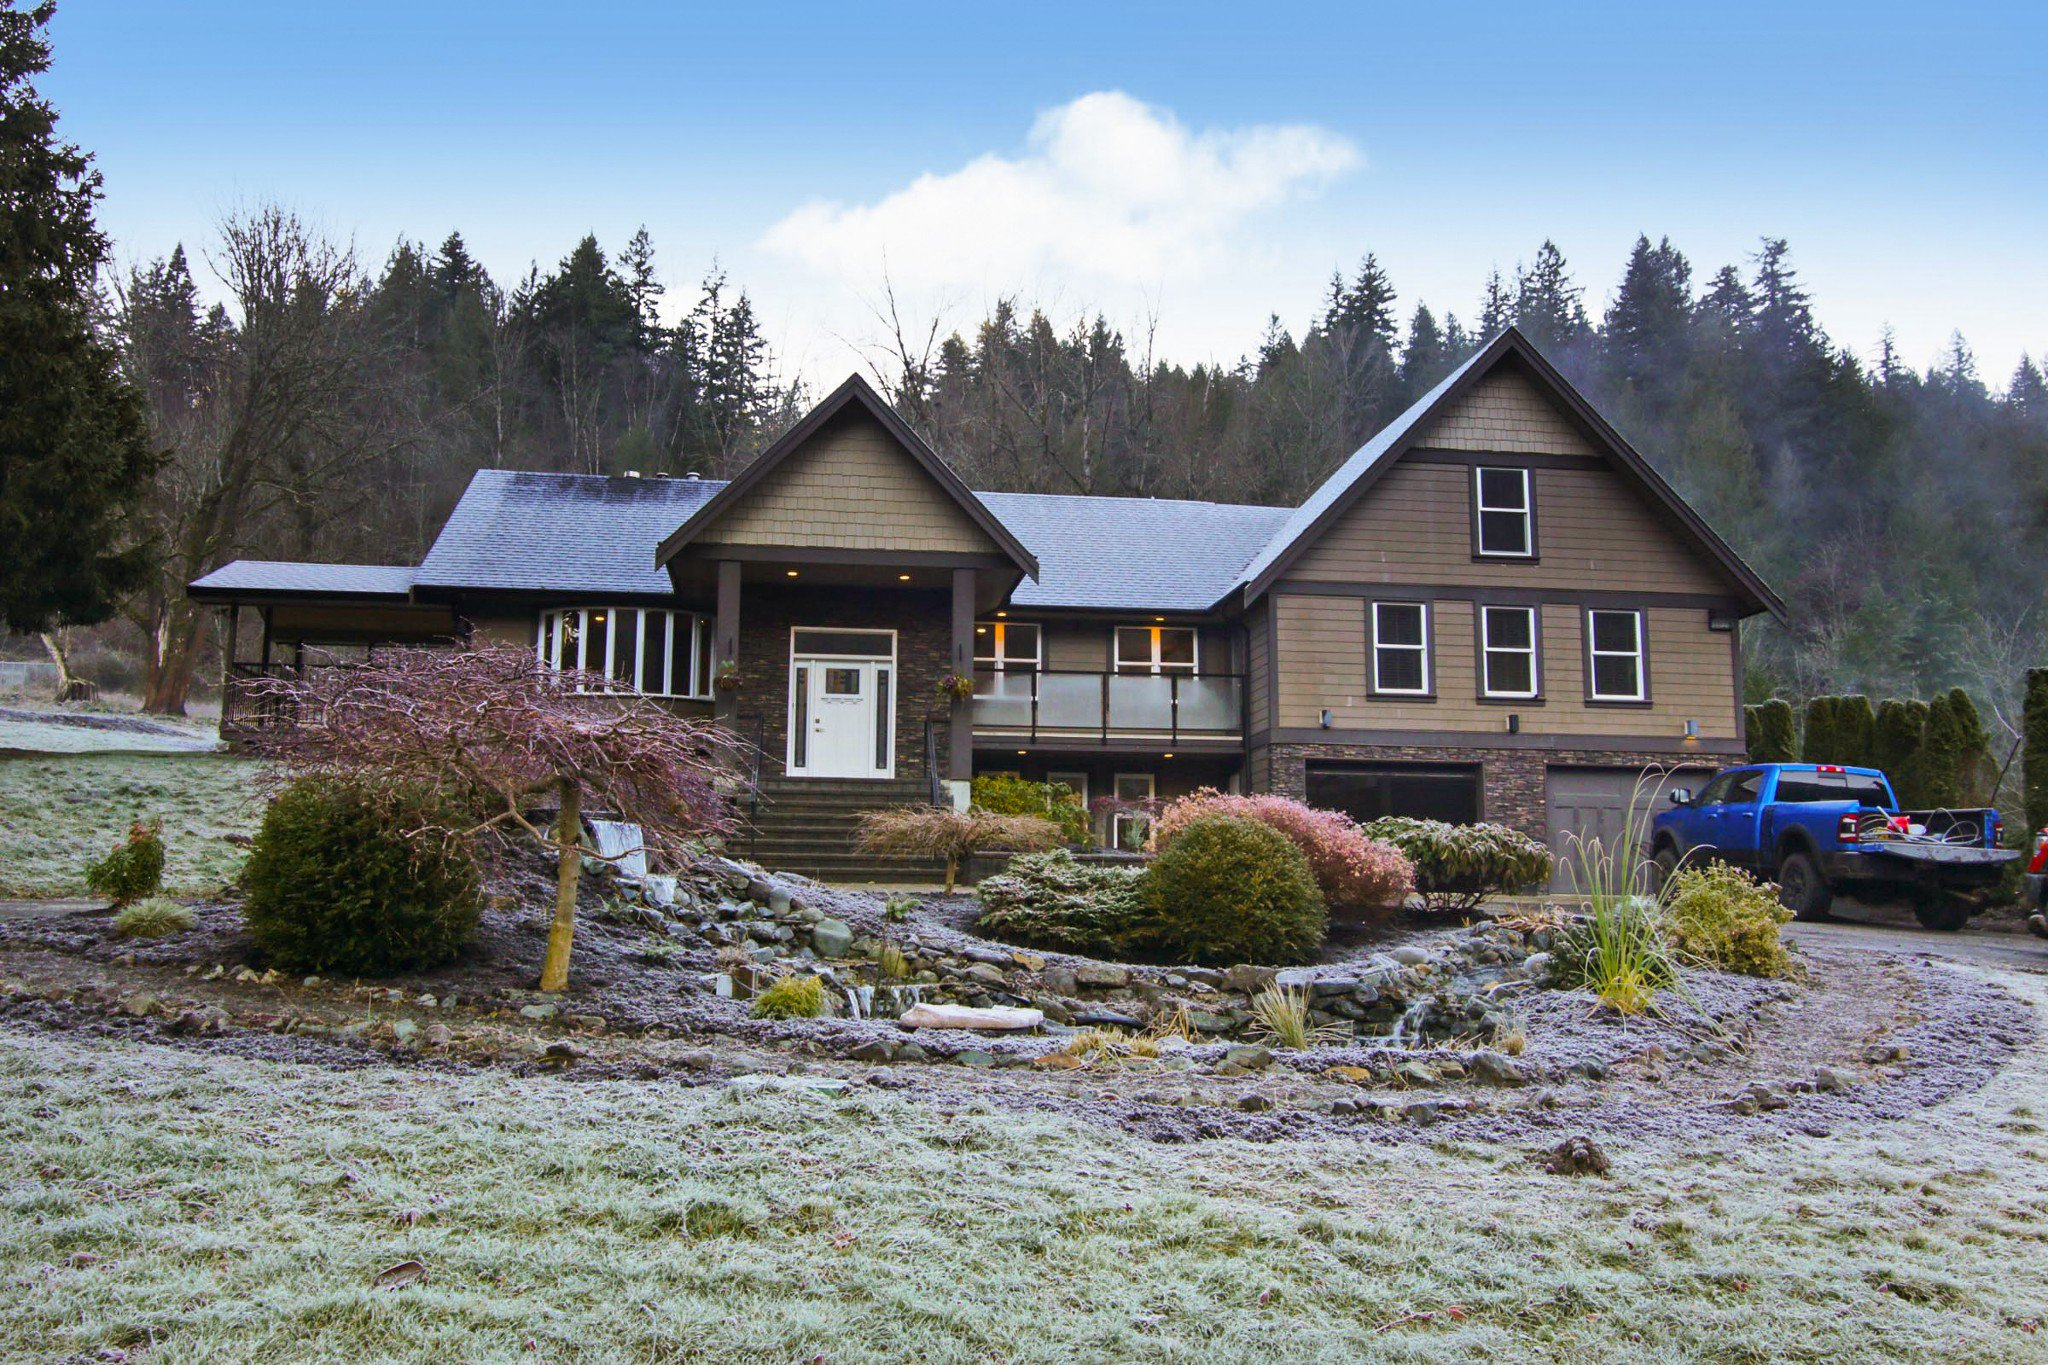 Main Photo: 48213 AUCHENWAY Road in Chilliwack: Chilliwack River Valley House for sale (Sardis)  : MLS®# R2524256